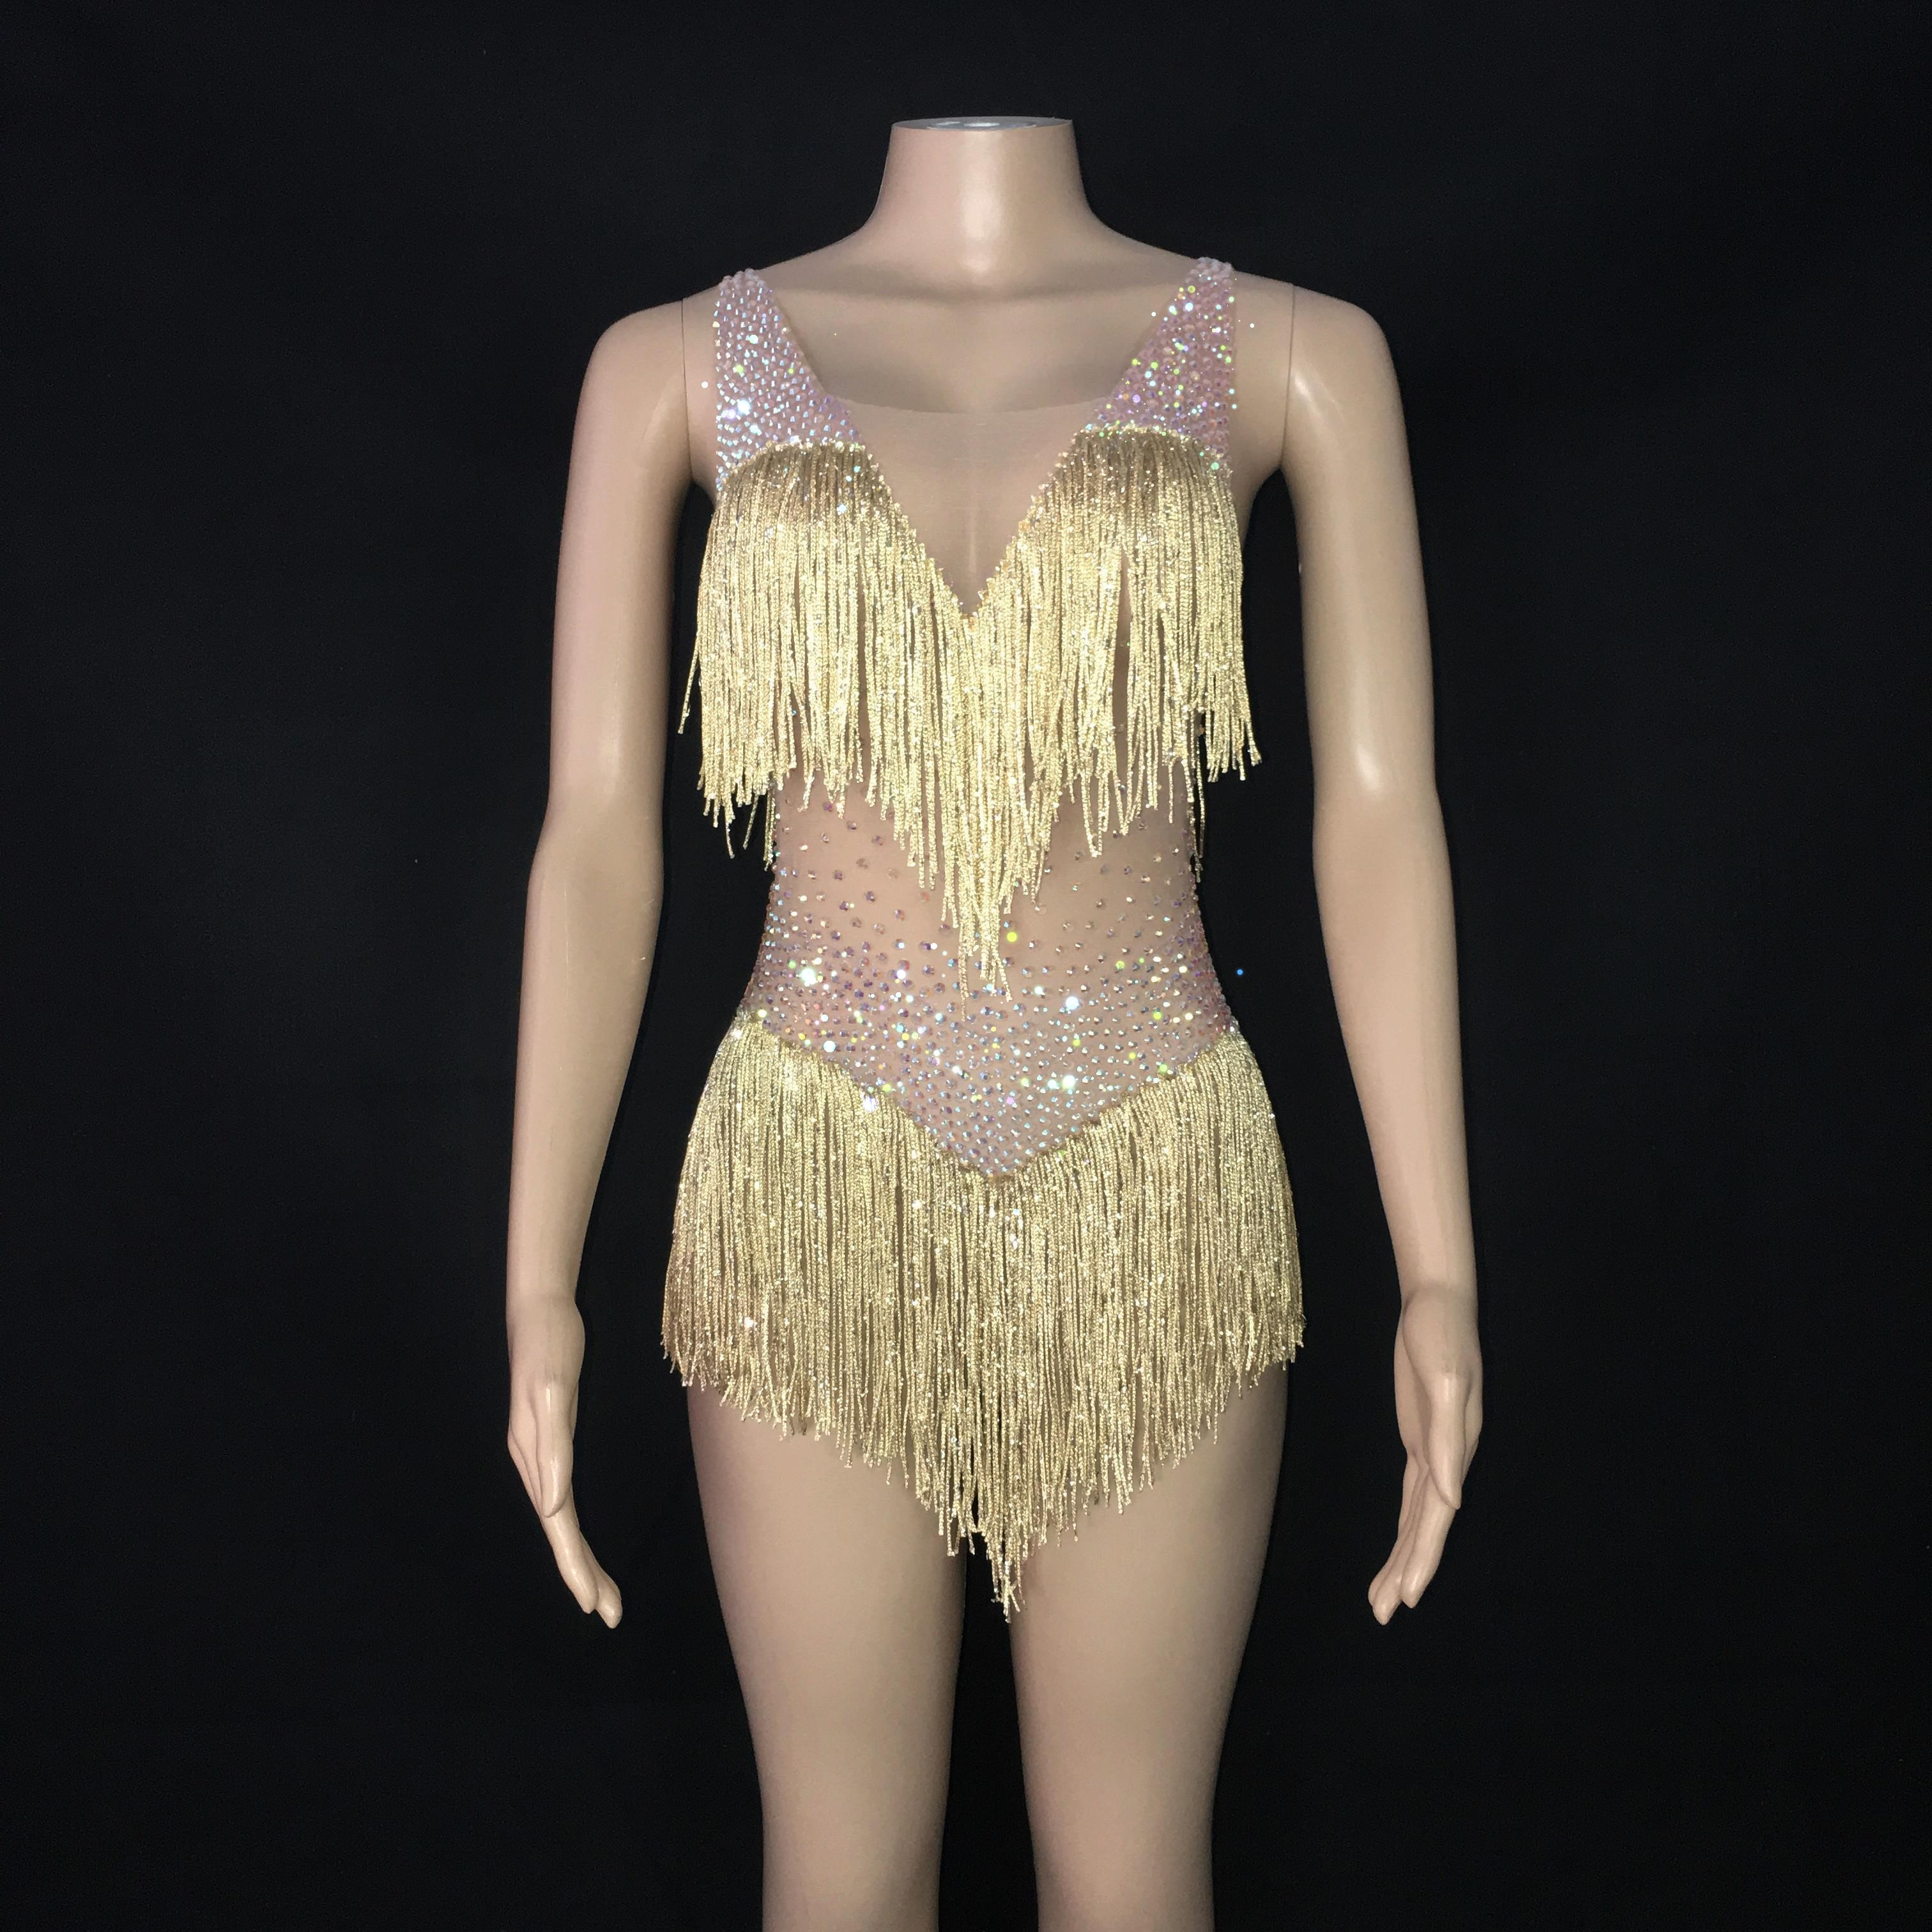 AB Color Stones Transparant  Gold Tassels Bodysuit Birthday Celebrate Dance Outfit Evening Women Singer Prom Fringes Leotard